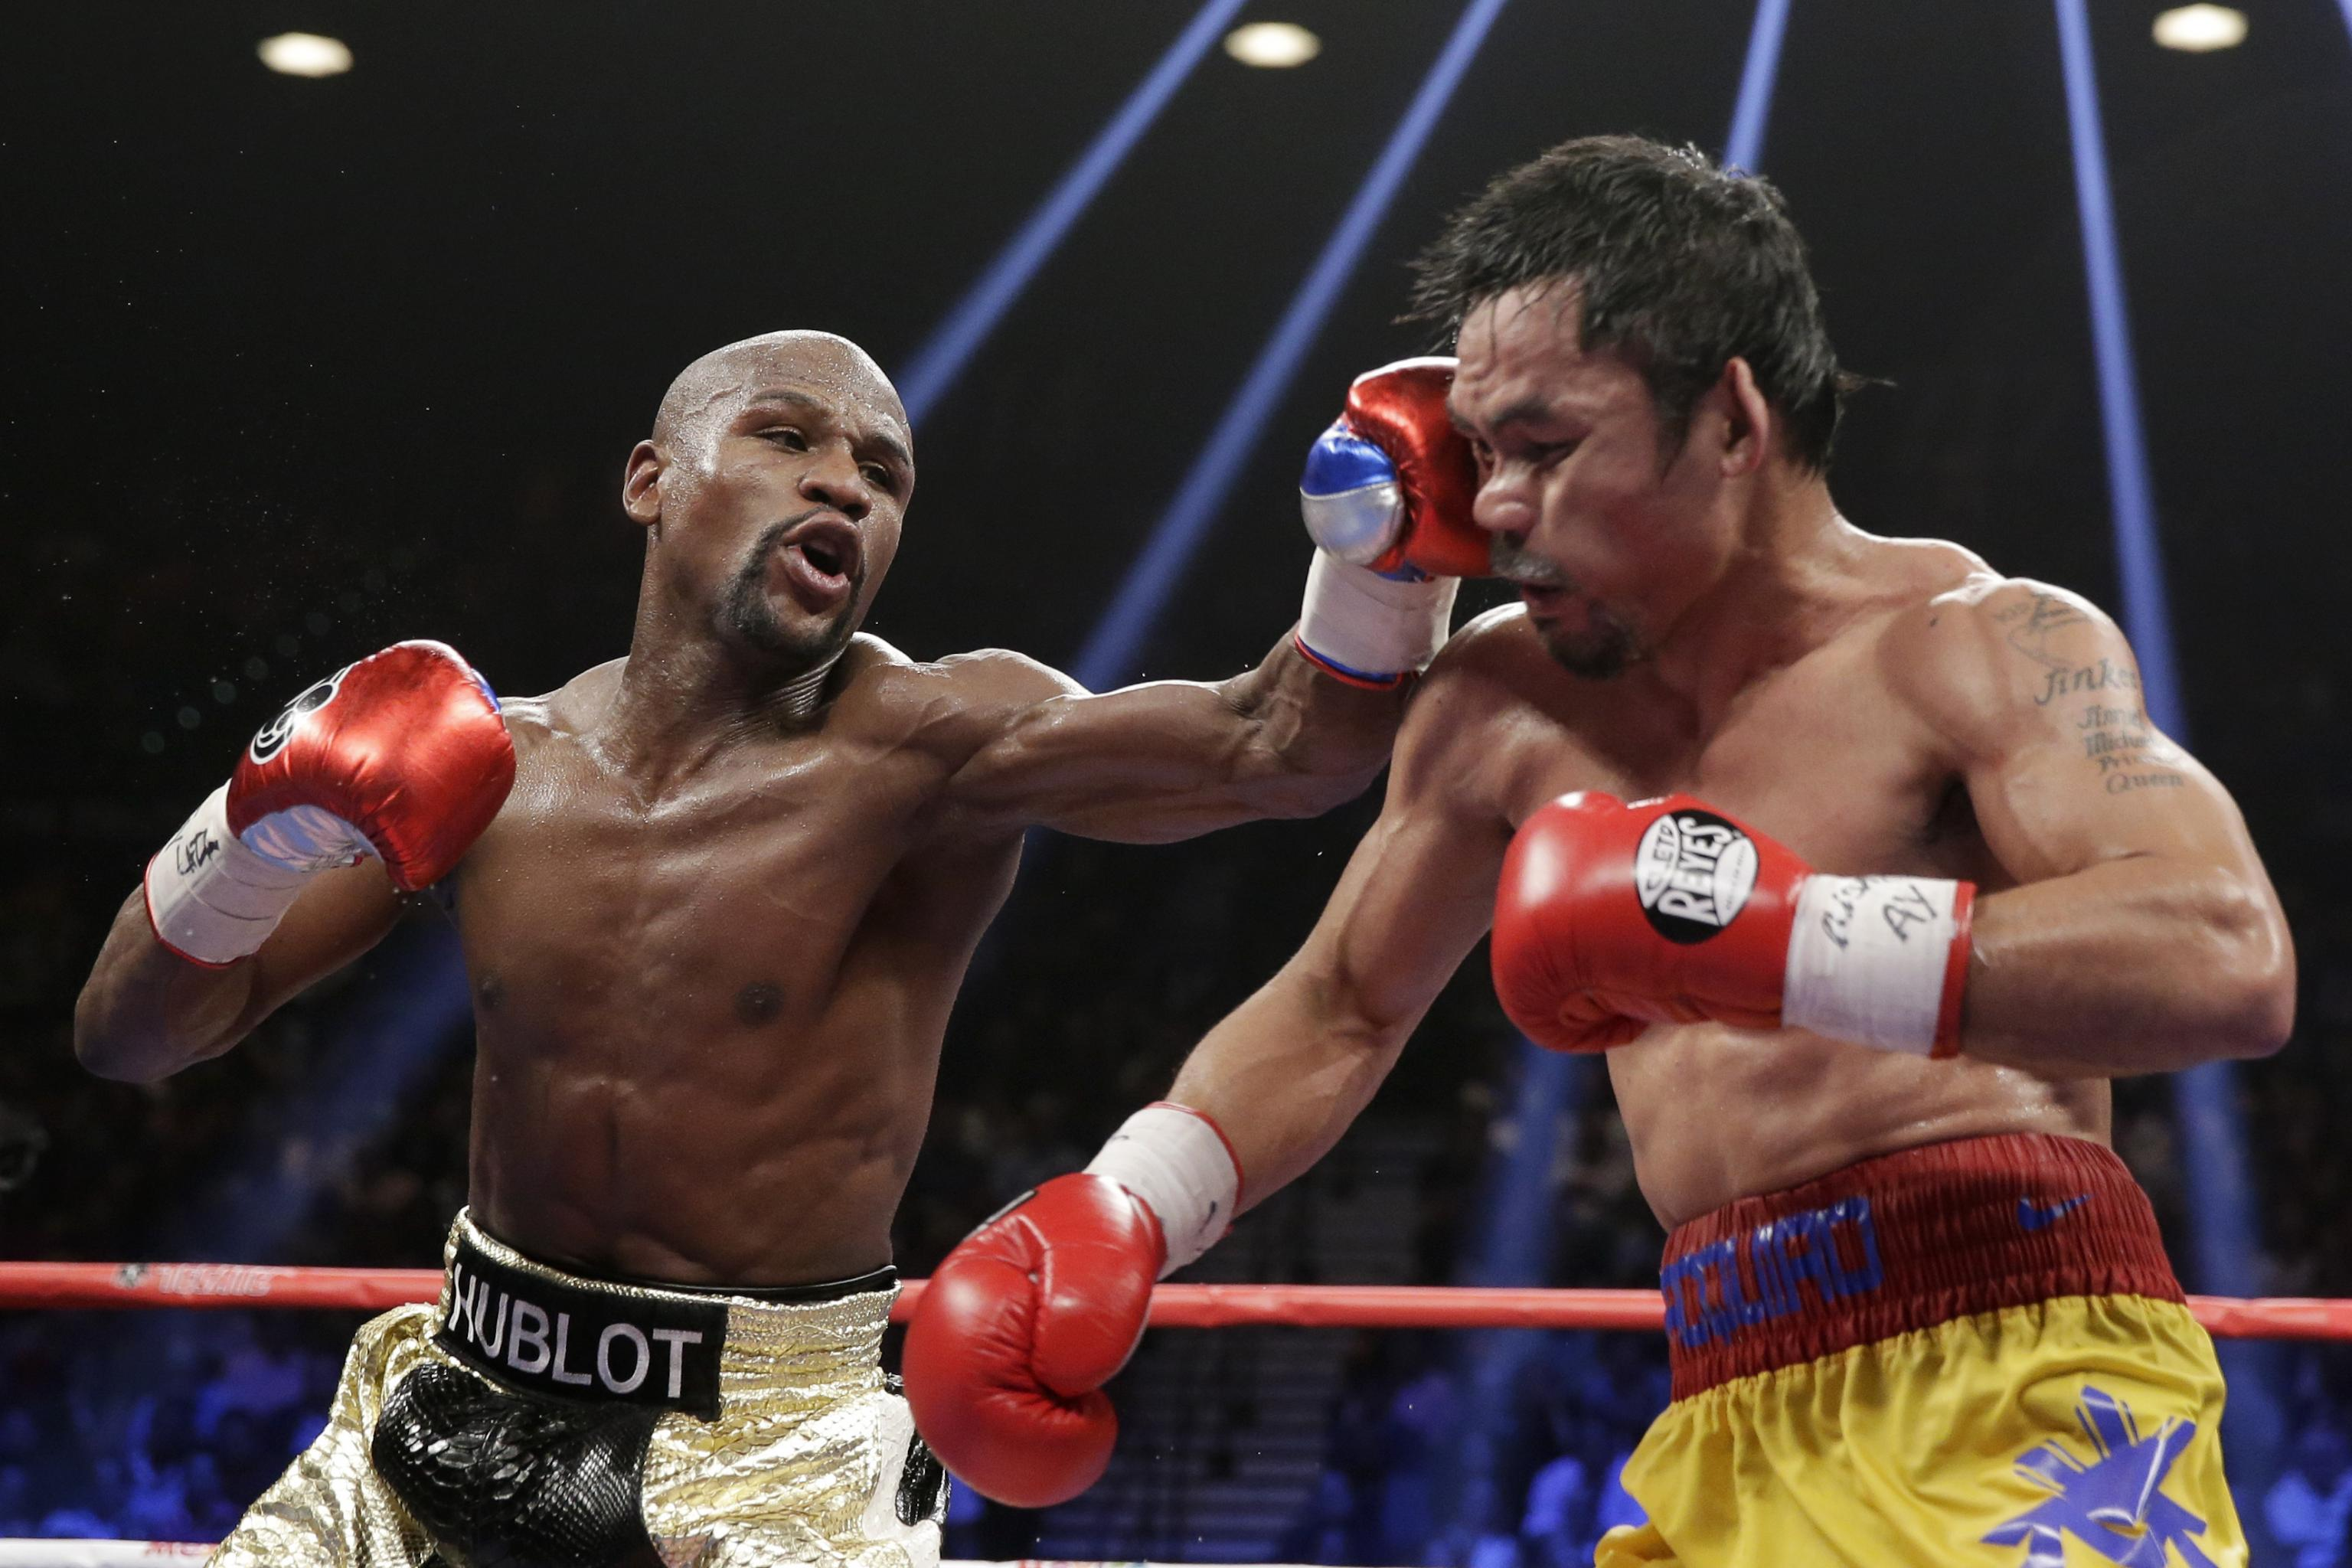 Floyd Mayweather Vs Manny Pacquiao Full Results Prize Money And More Bleacher Report Latest News Videos And Highlights